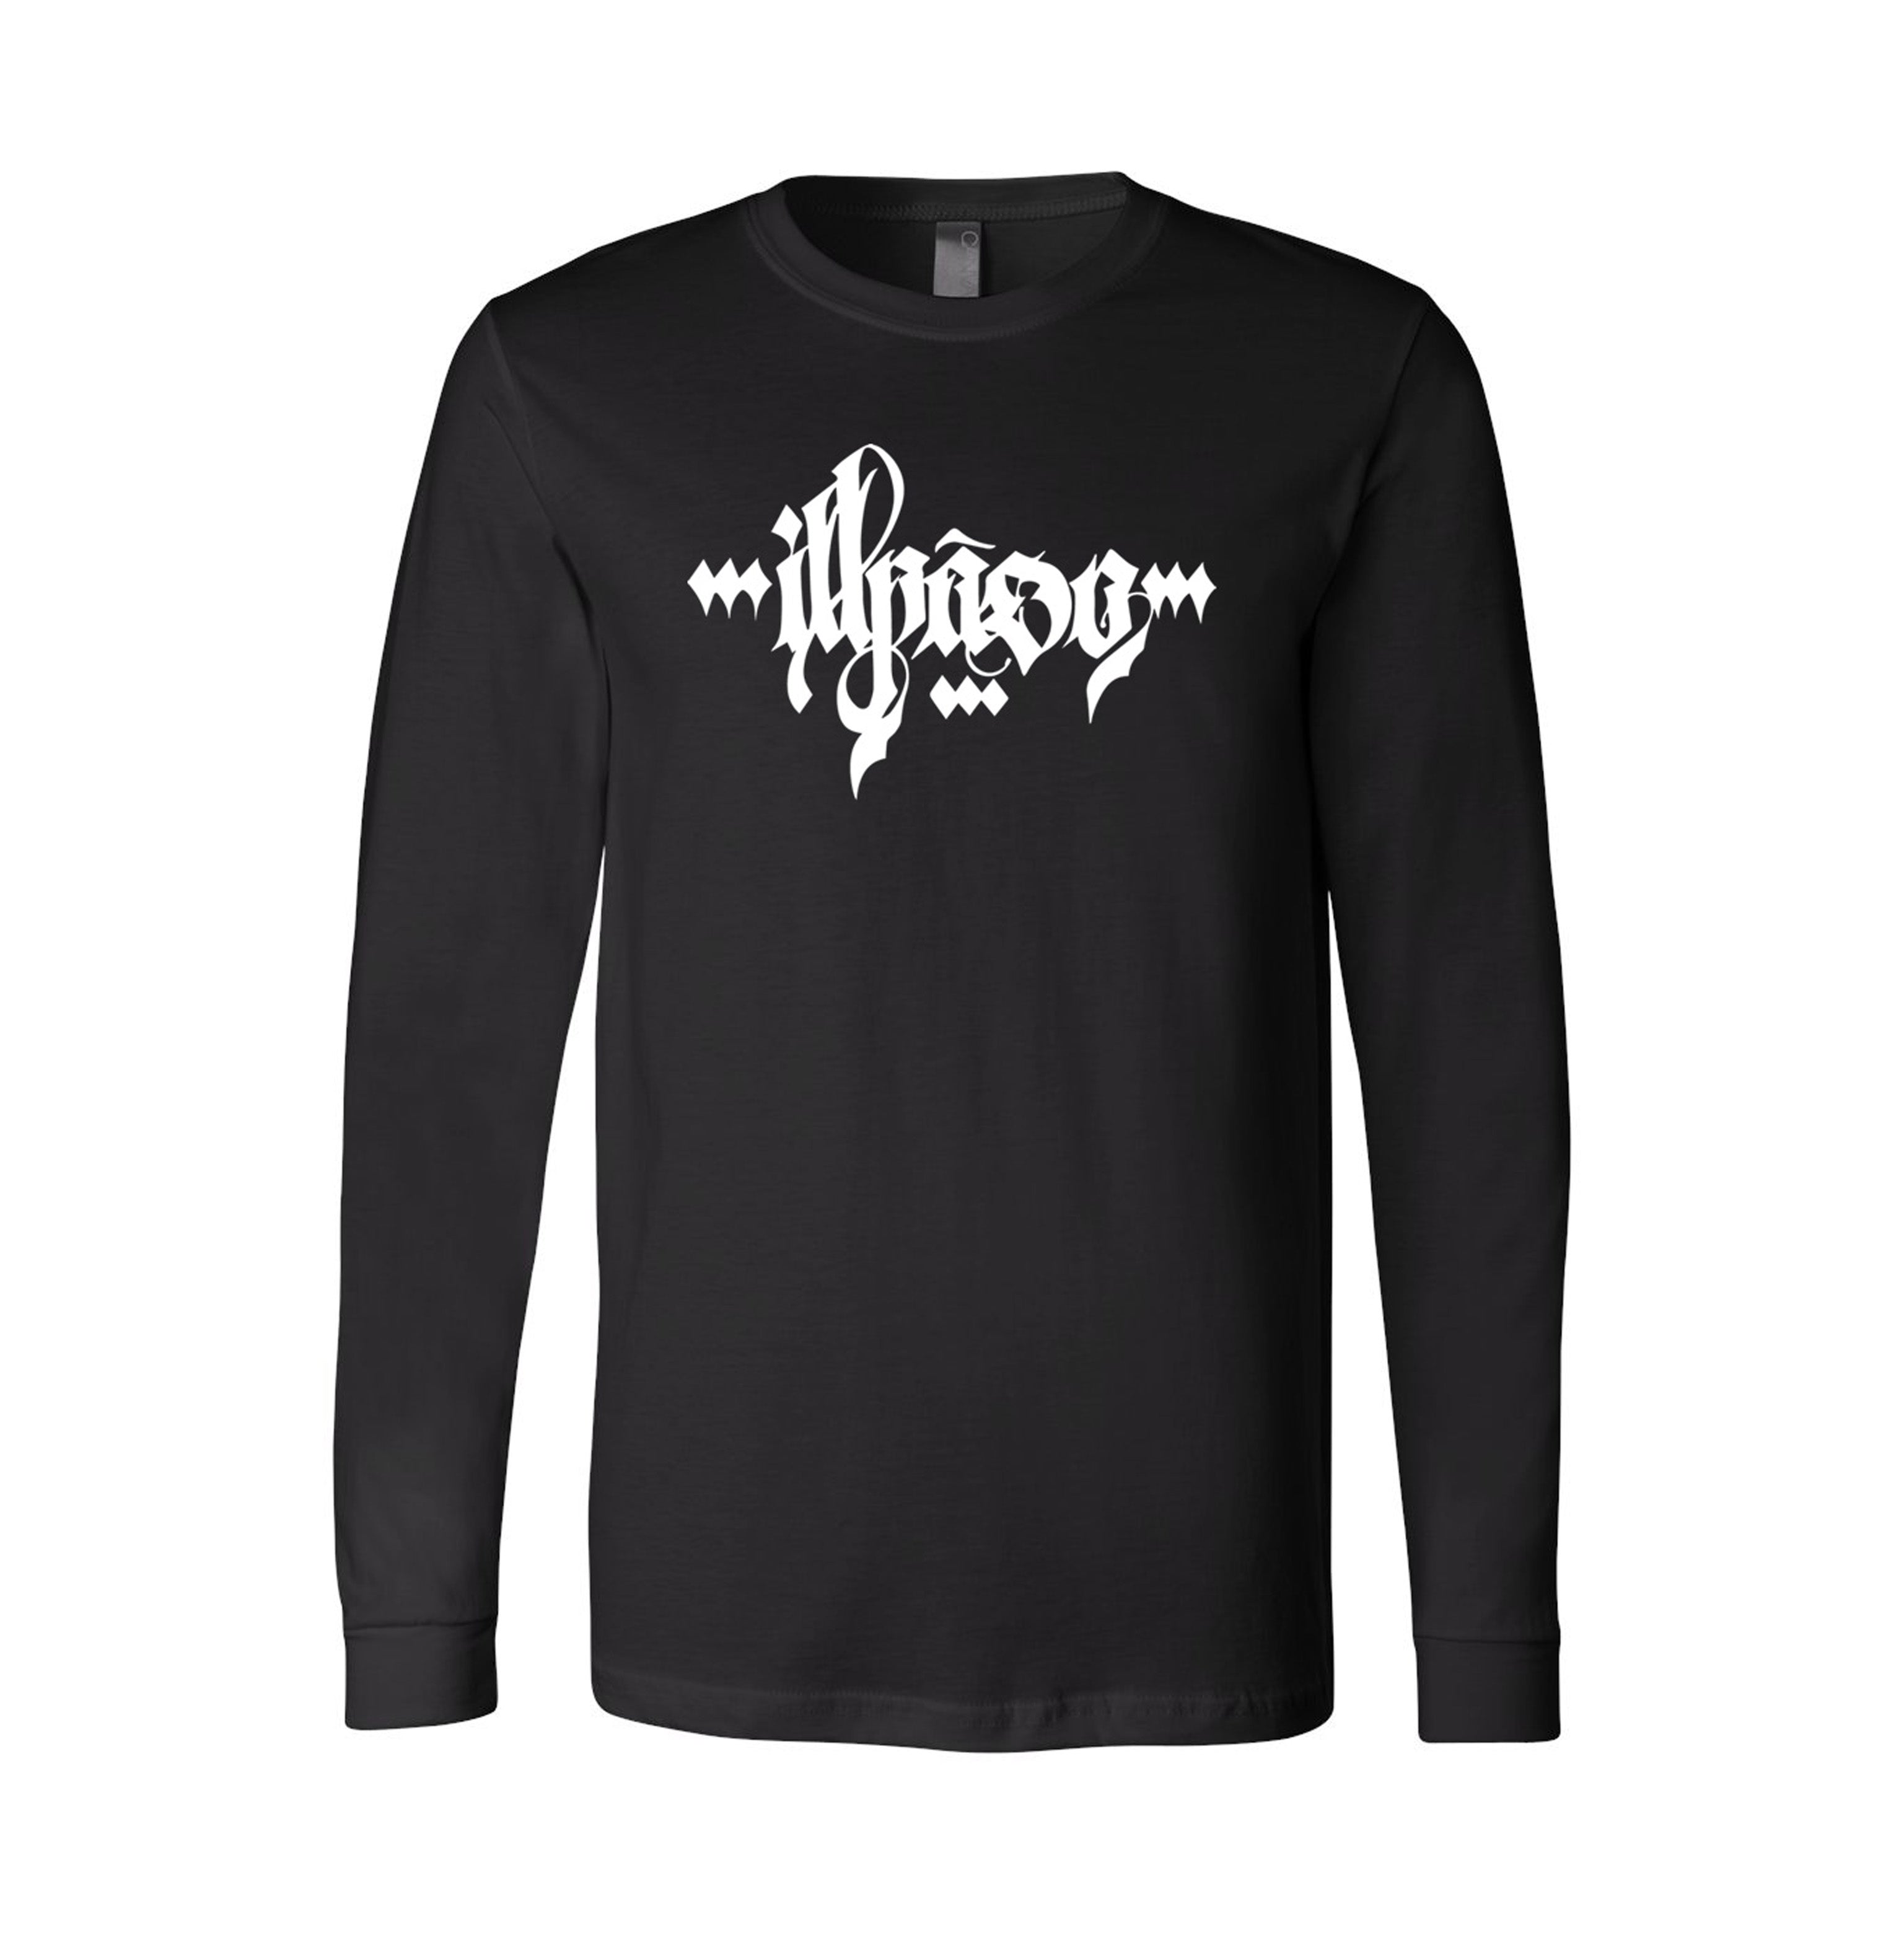 """Calligraphy 1"" Adult Uni-Sex Long Sleeve T-shirt (Black) by Owenuma"